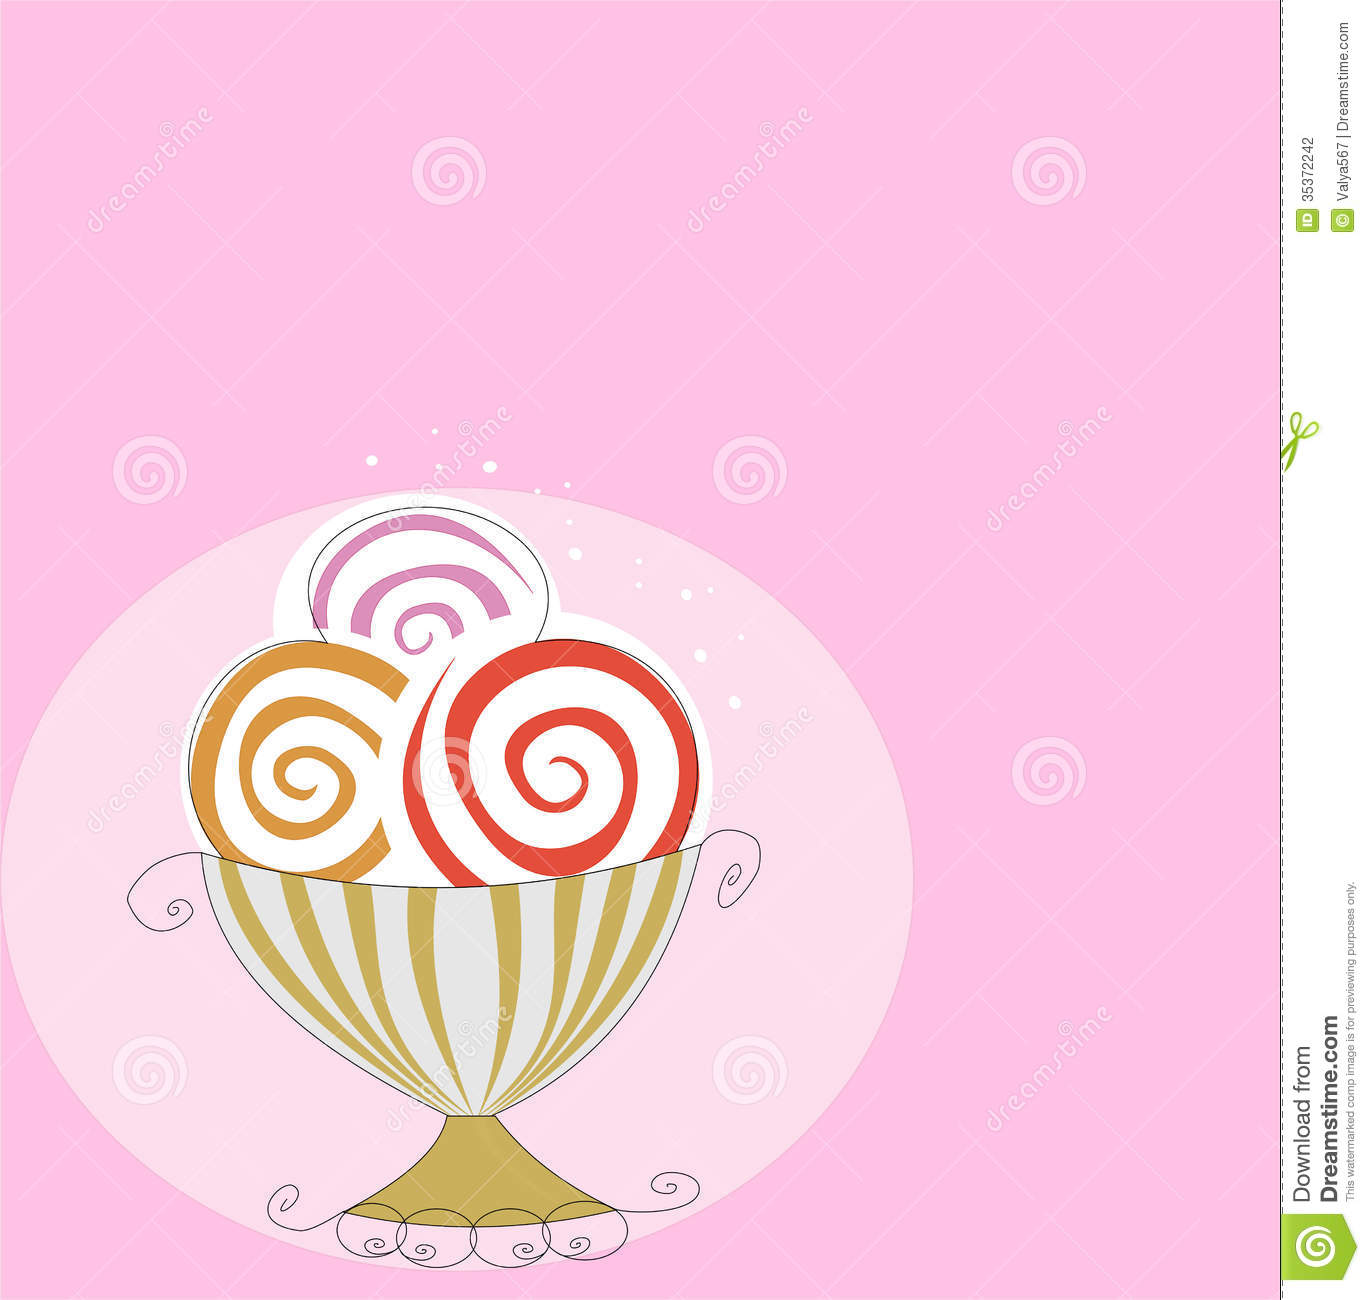 Download Melting Ice Cream Wallpaper Gallery: Retro Ice Cream Stock Illustration. Illustration Of Retro